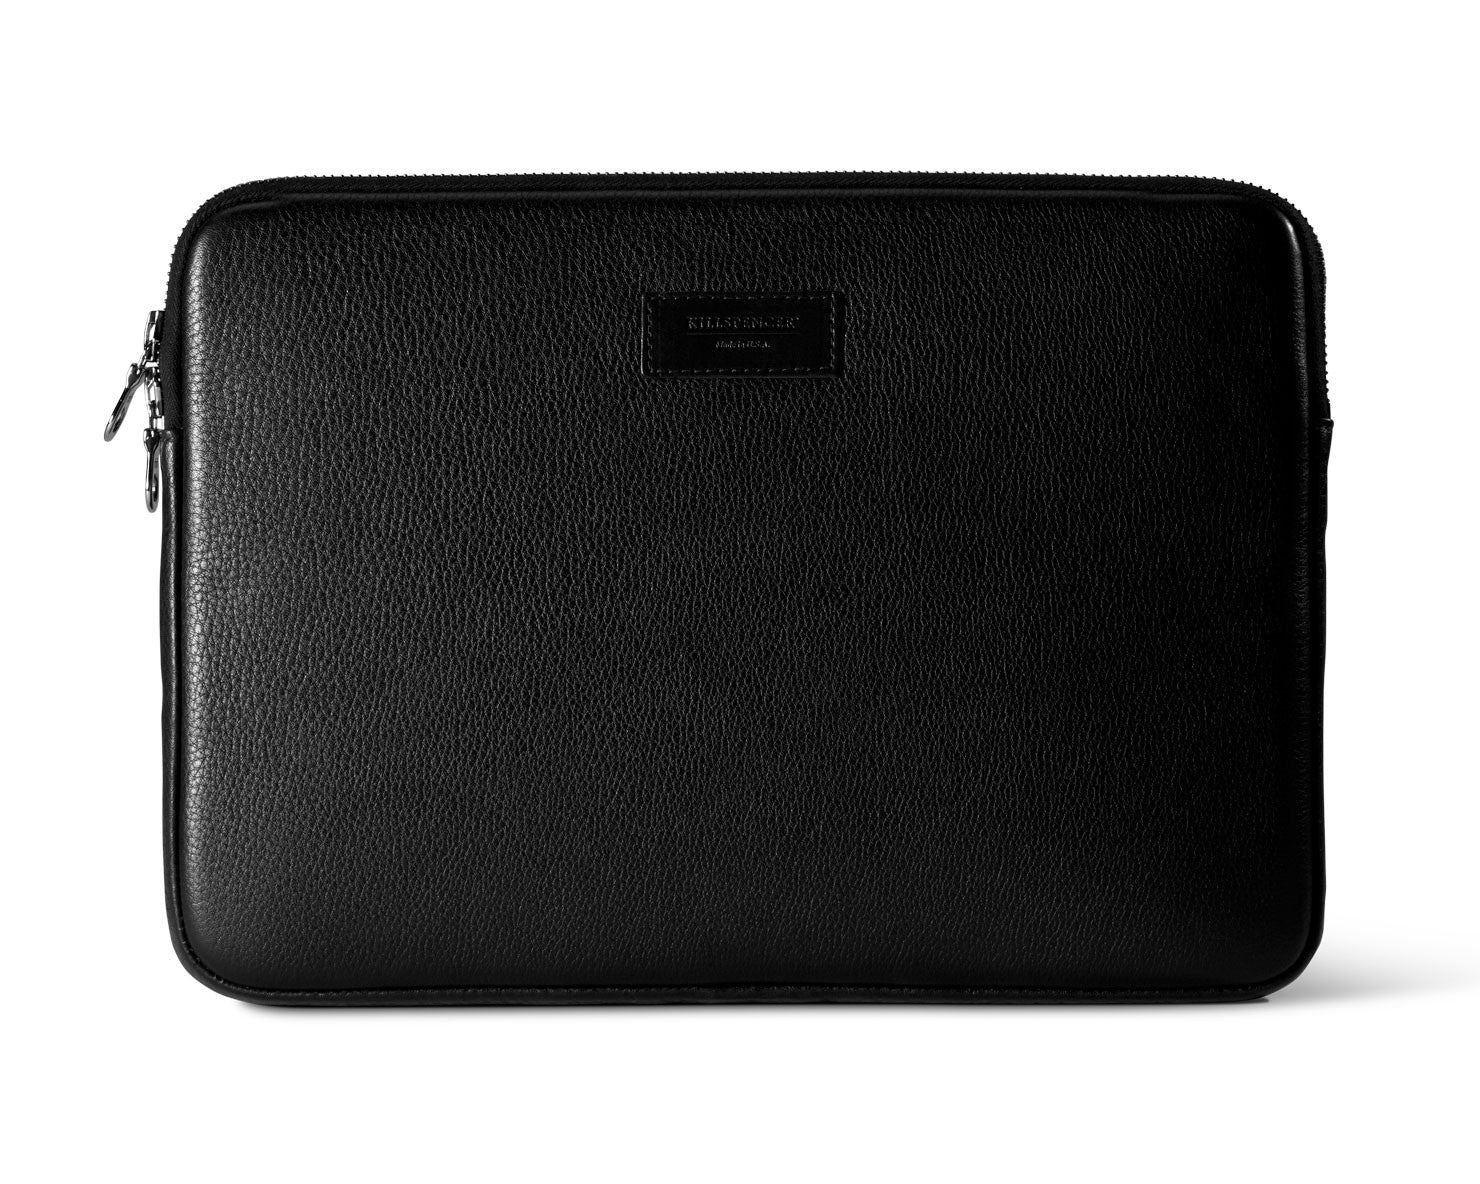 IPAD PRO CASE | KILLSPENCER® - Black Leather